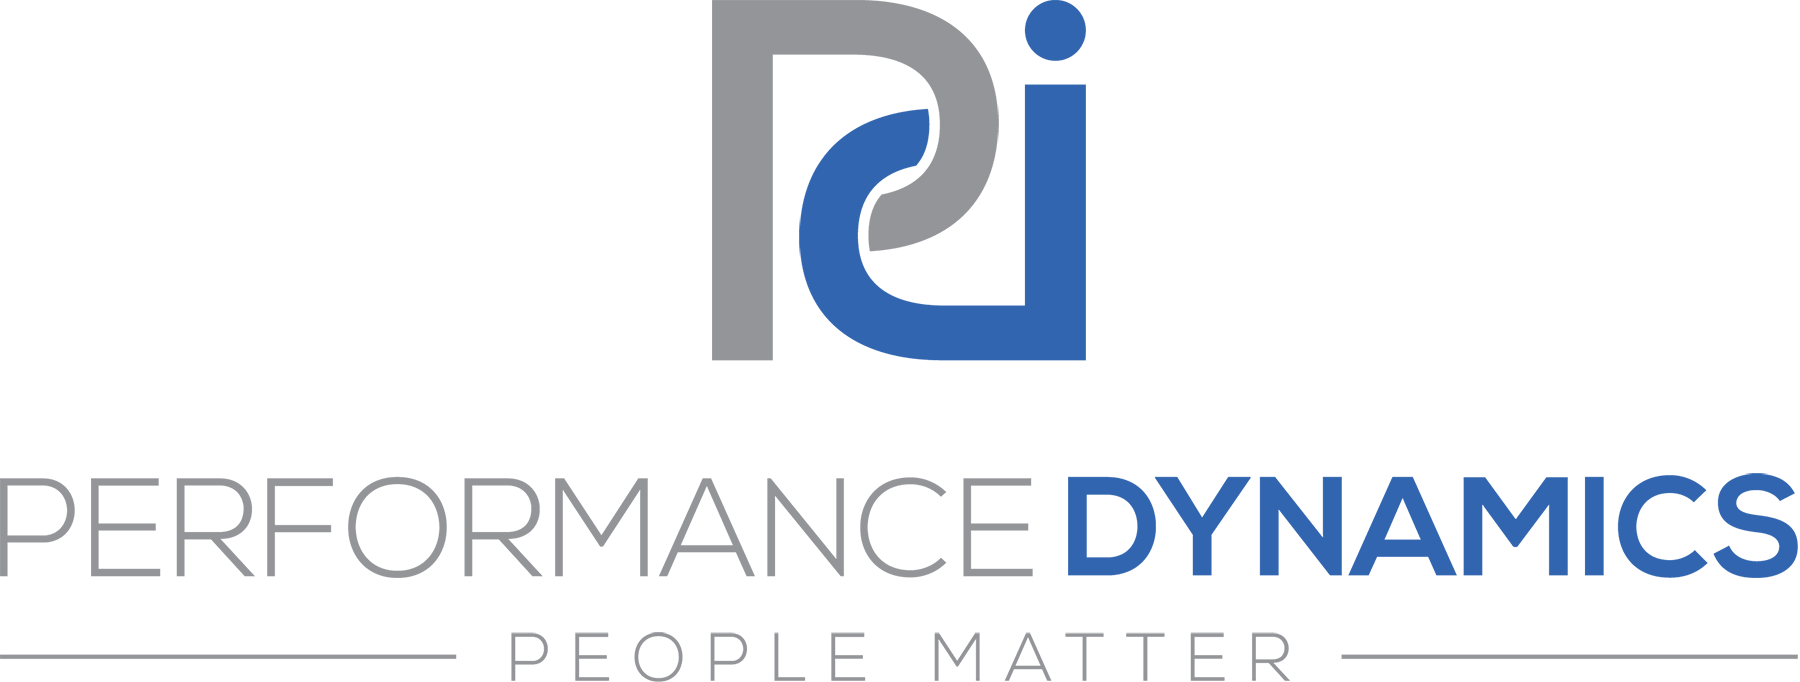 performance dynamics carlysle human-capital-consulting-services-head-hunters-job-seekers-employment-staff-staffing-solutions